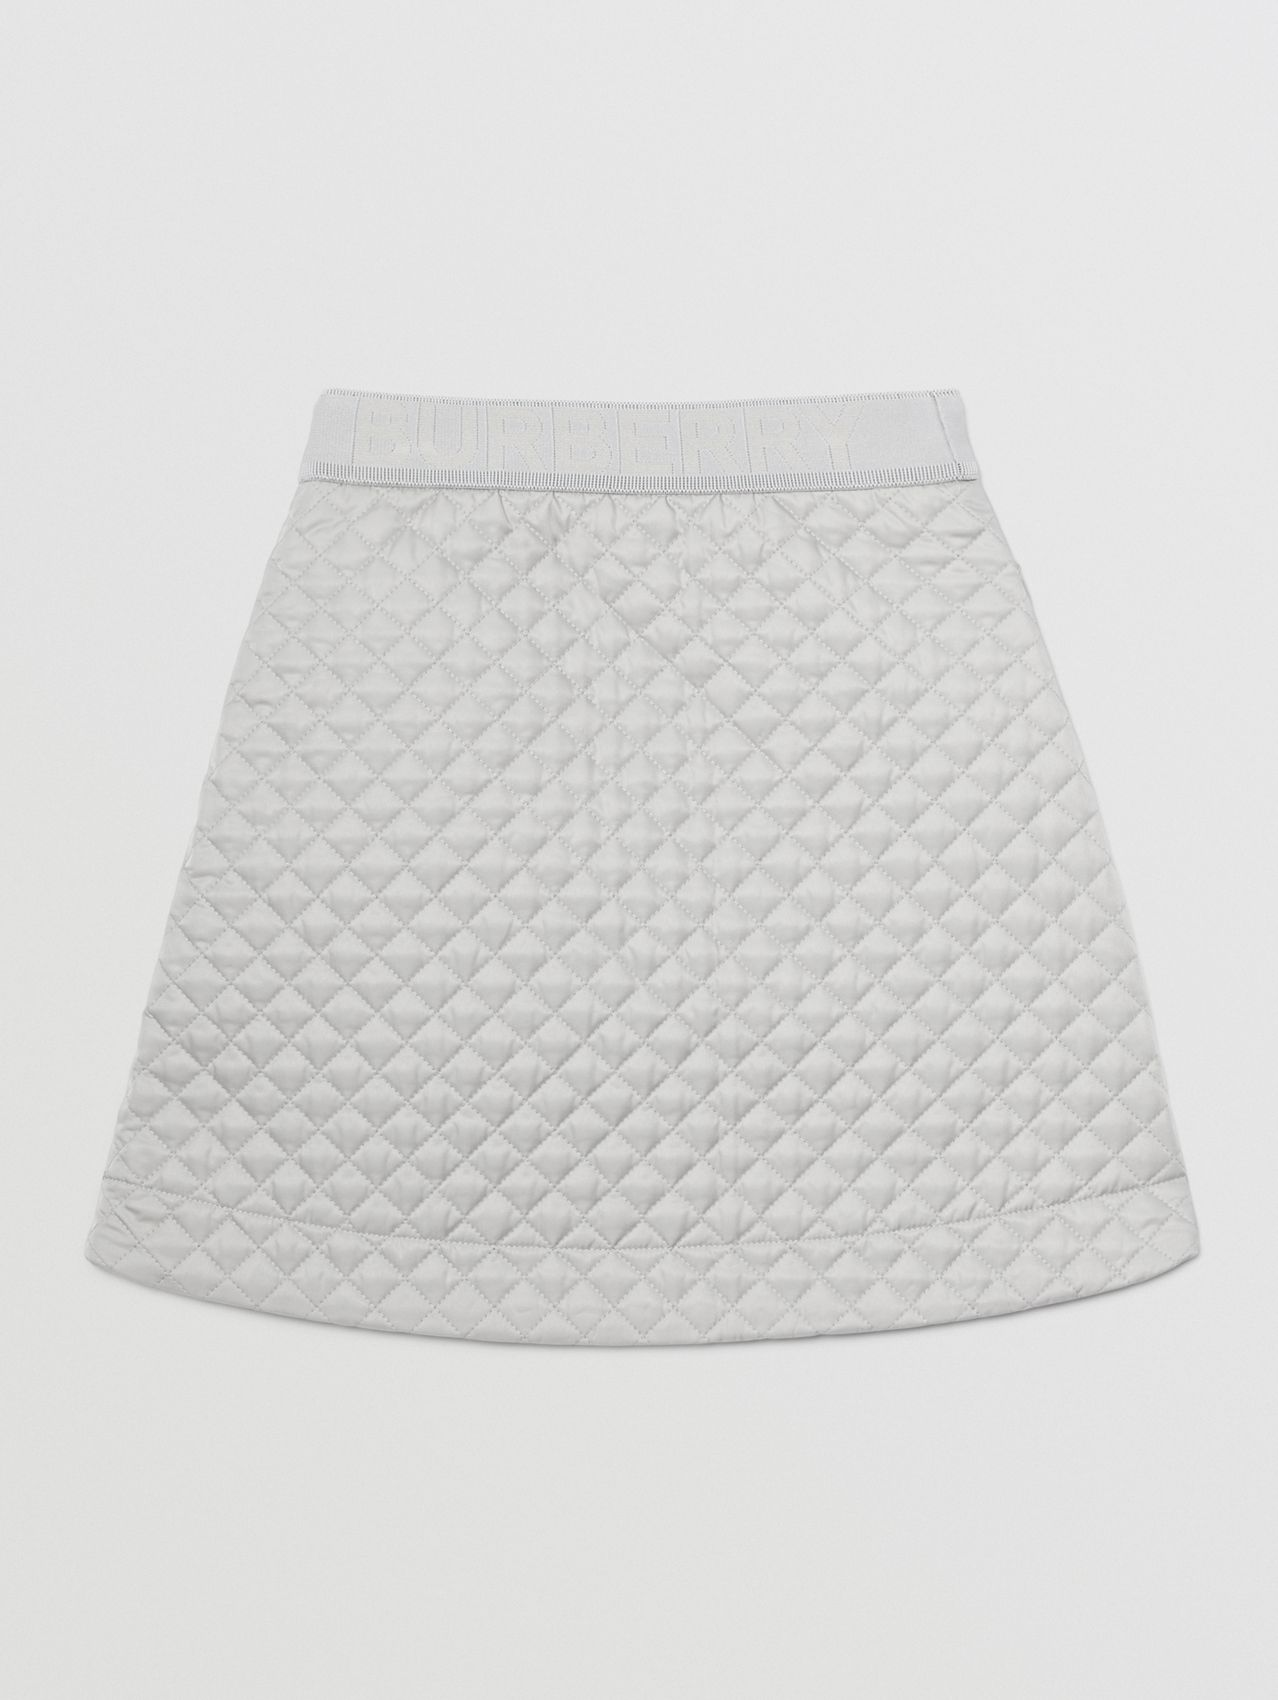 Monogram Quilted Panel Recycled Polyester Skirt in Light Grey